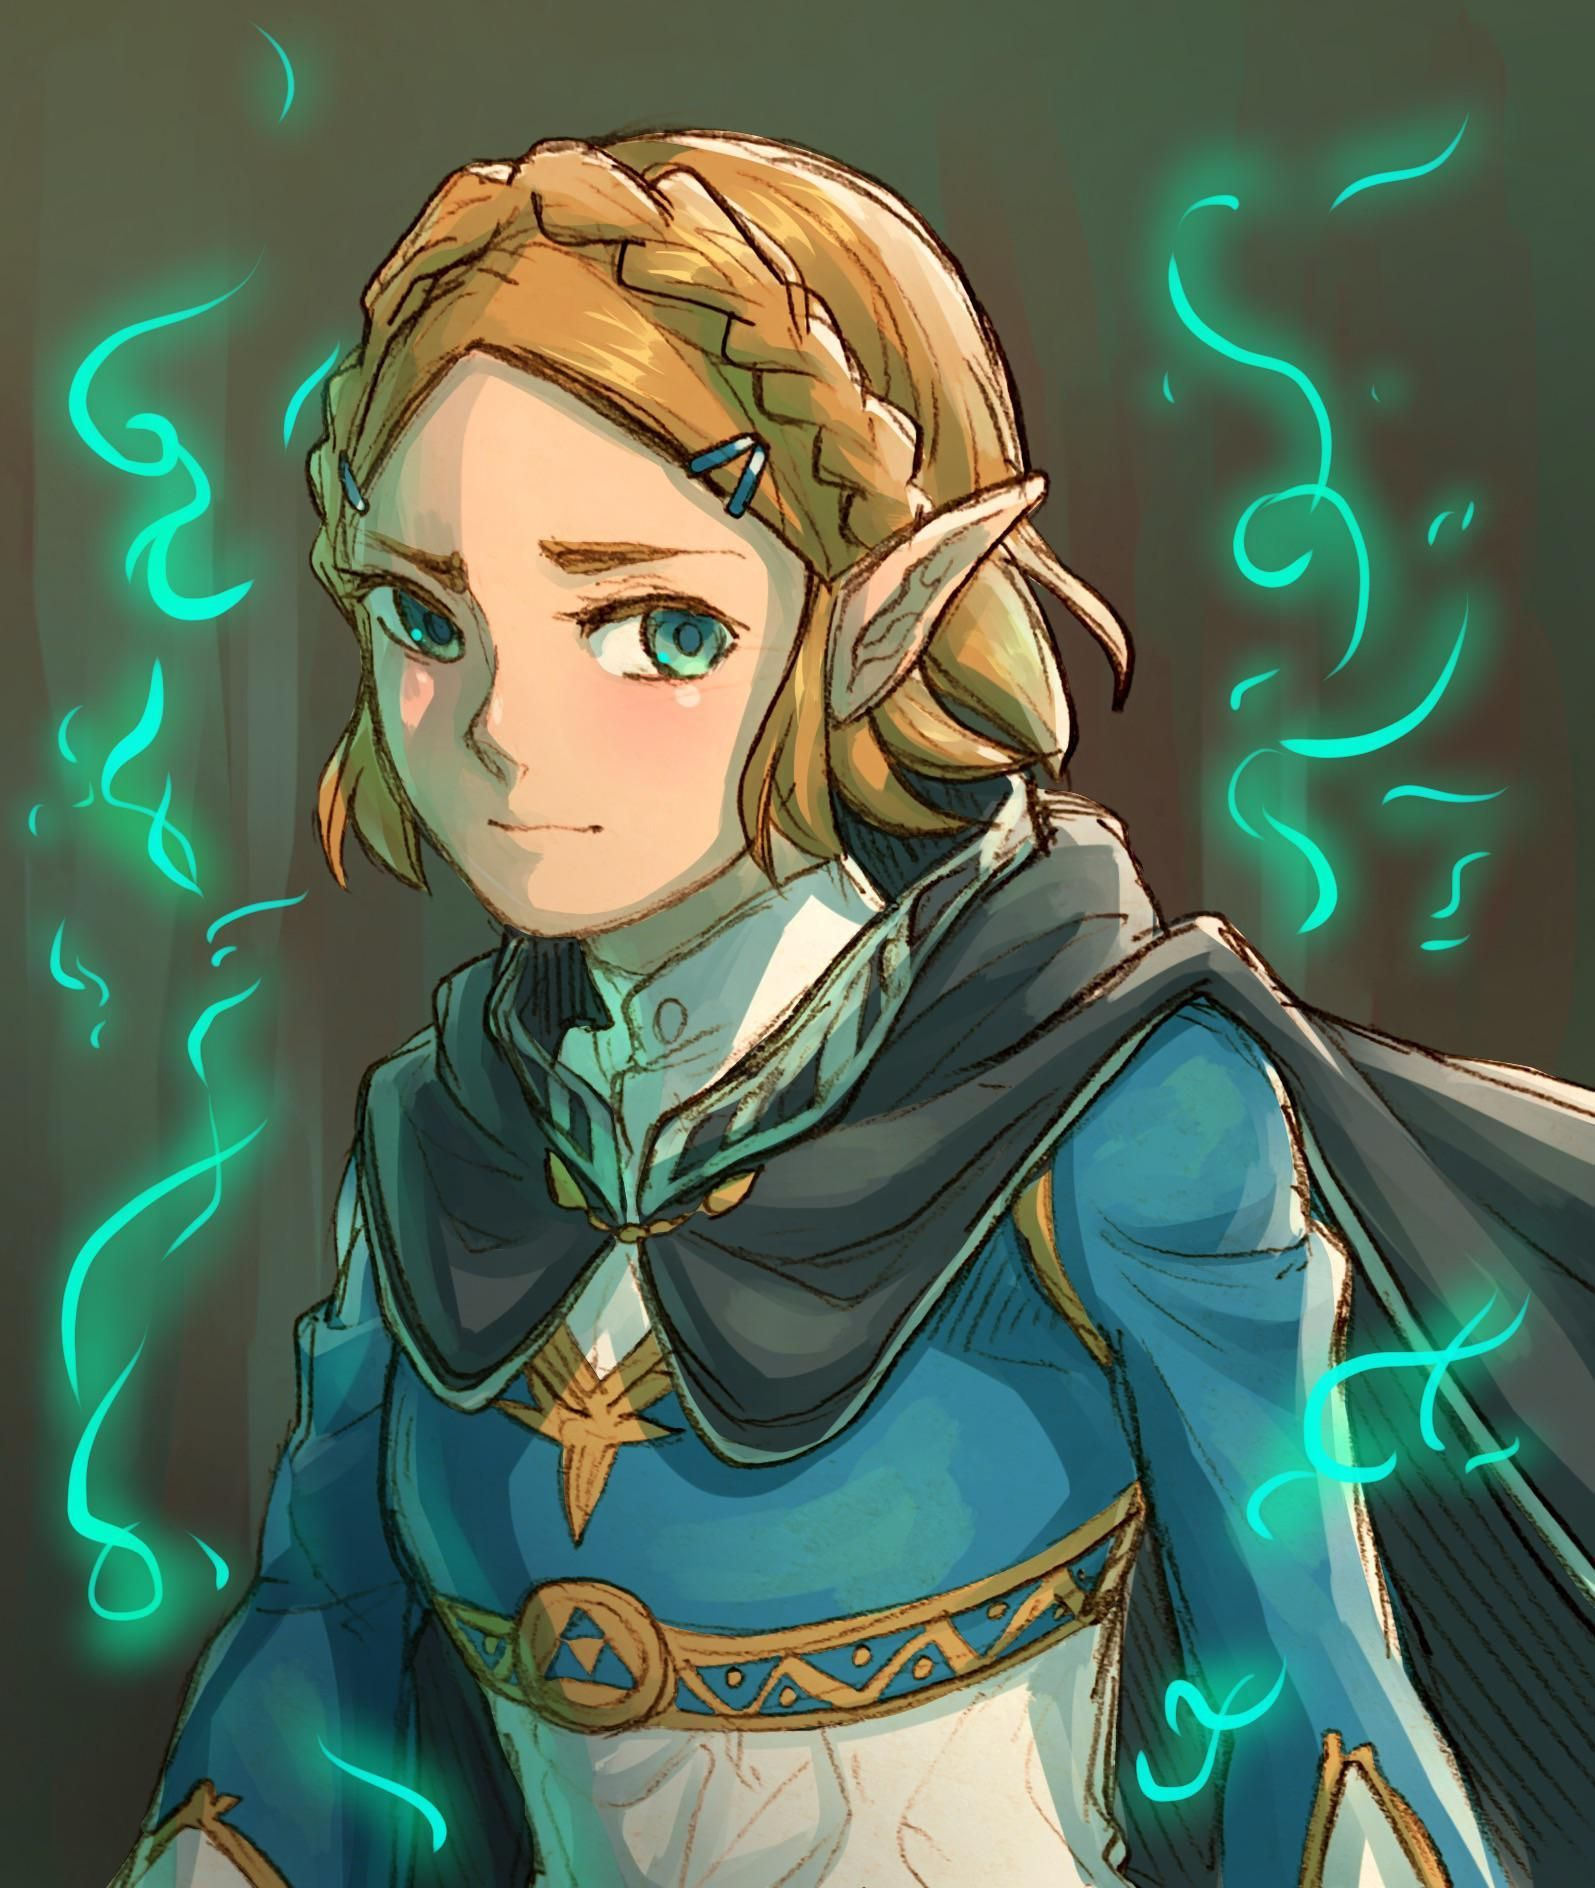 Short Hair Zelda The Legend Of Zelda Breath Of The Wild Legend Of Zelda Legend Of Zelda Breath Breath Of The Wild